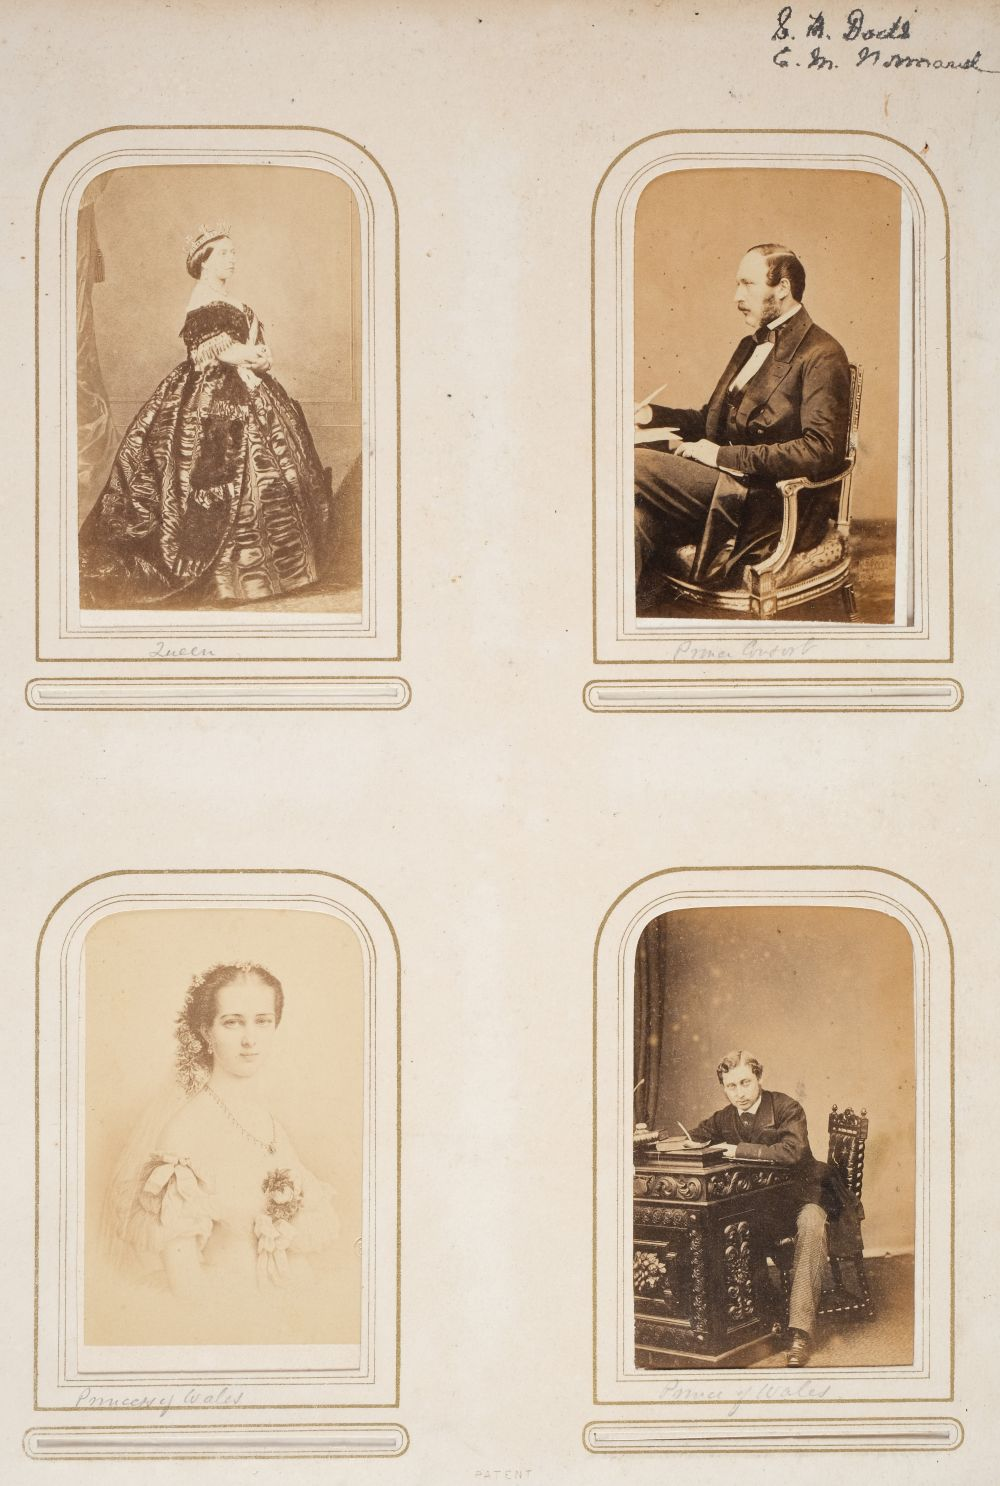 * Cartes de visite. A group of 3 albums of cartes de visite and cabinet cards - Image 2 of 26